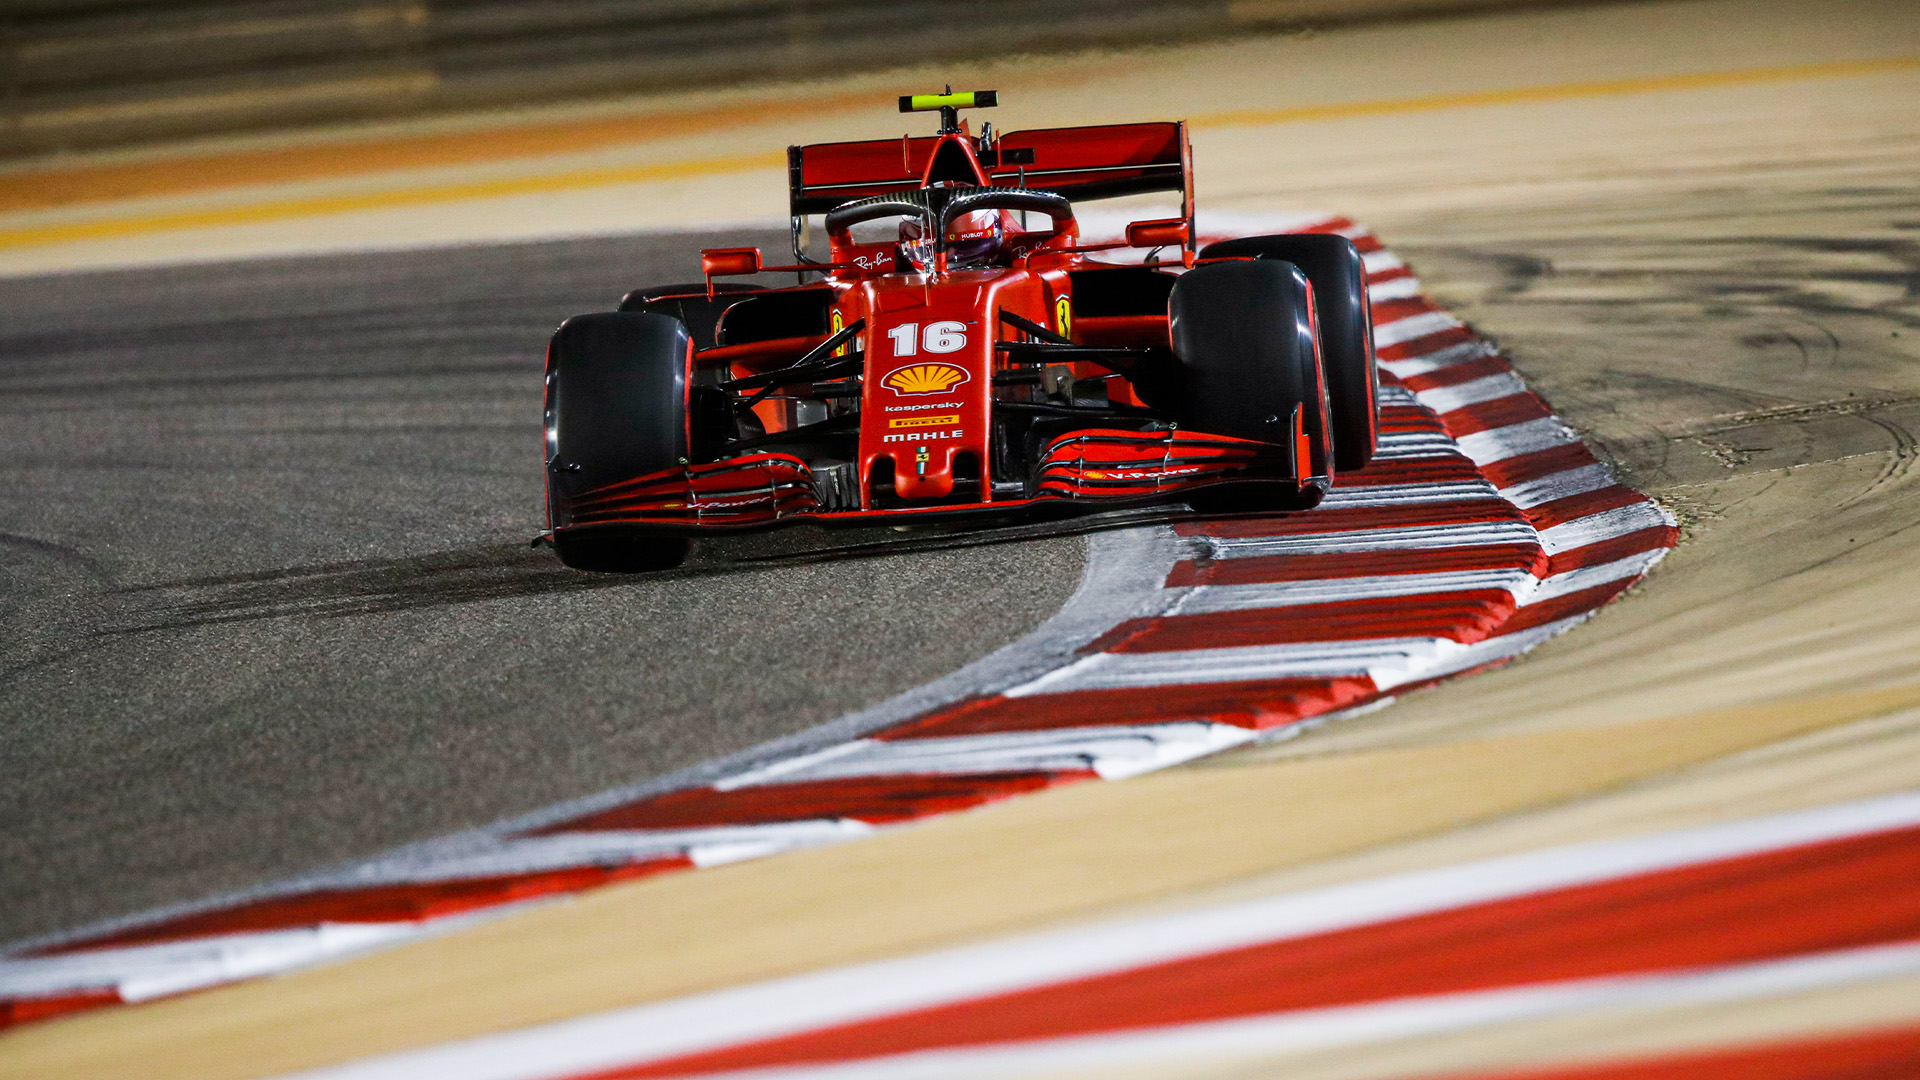 Charles Leclerc in qualifying for the 2020 F1 Sakhir Grand Prix